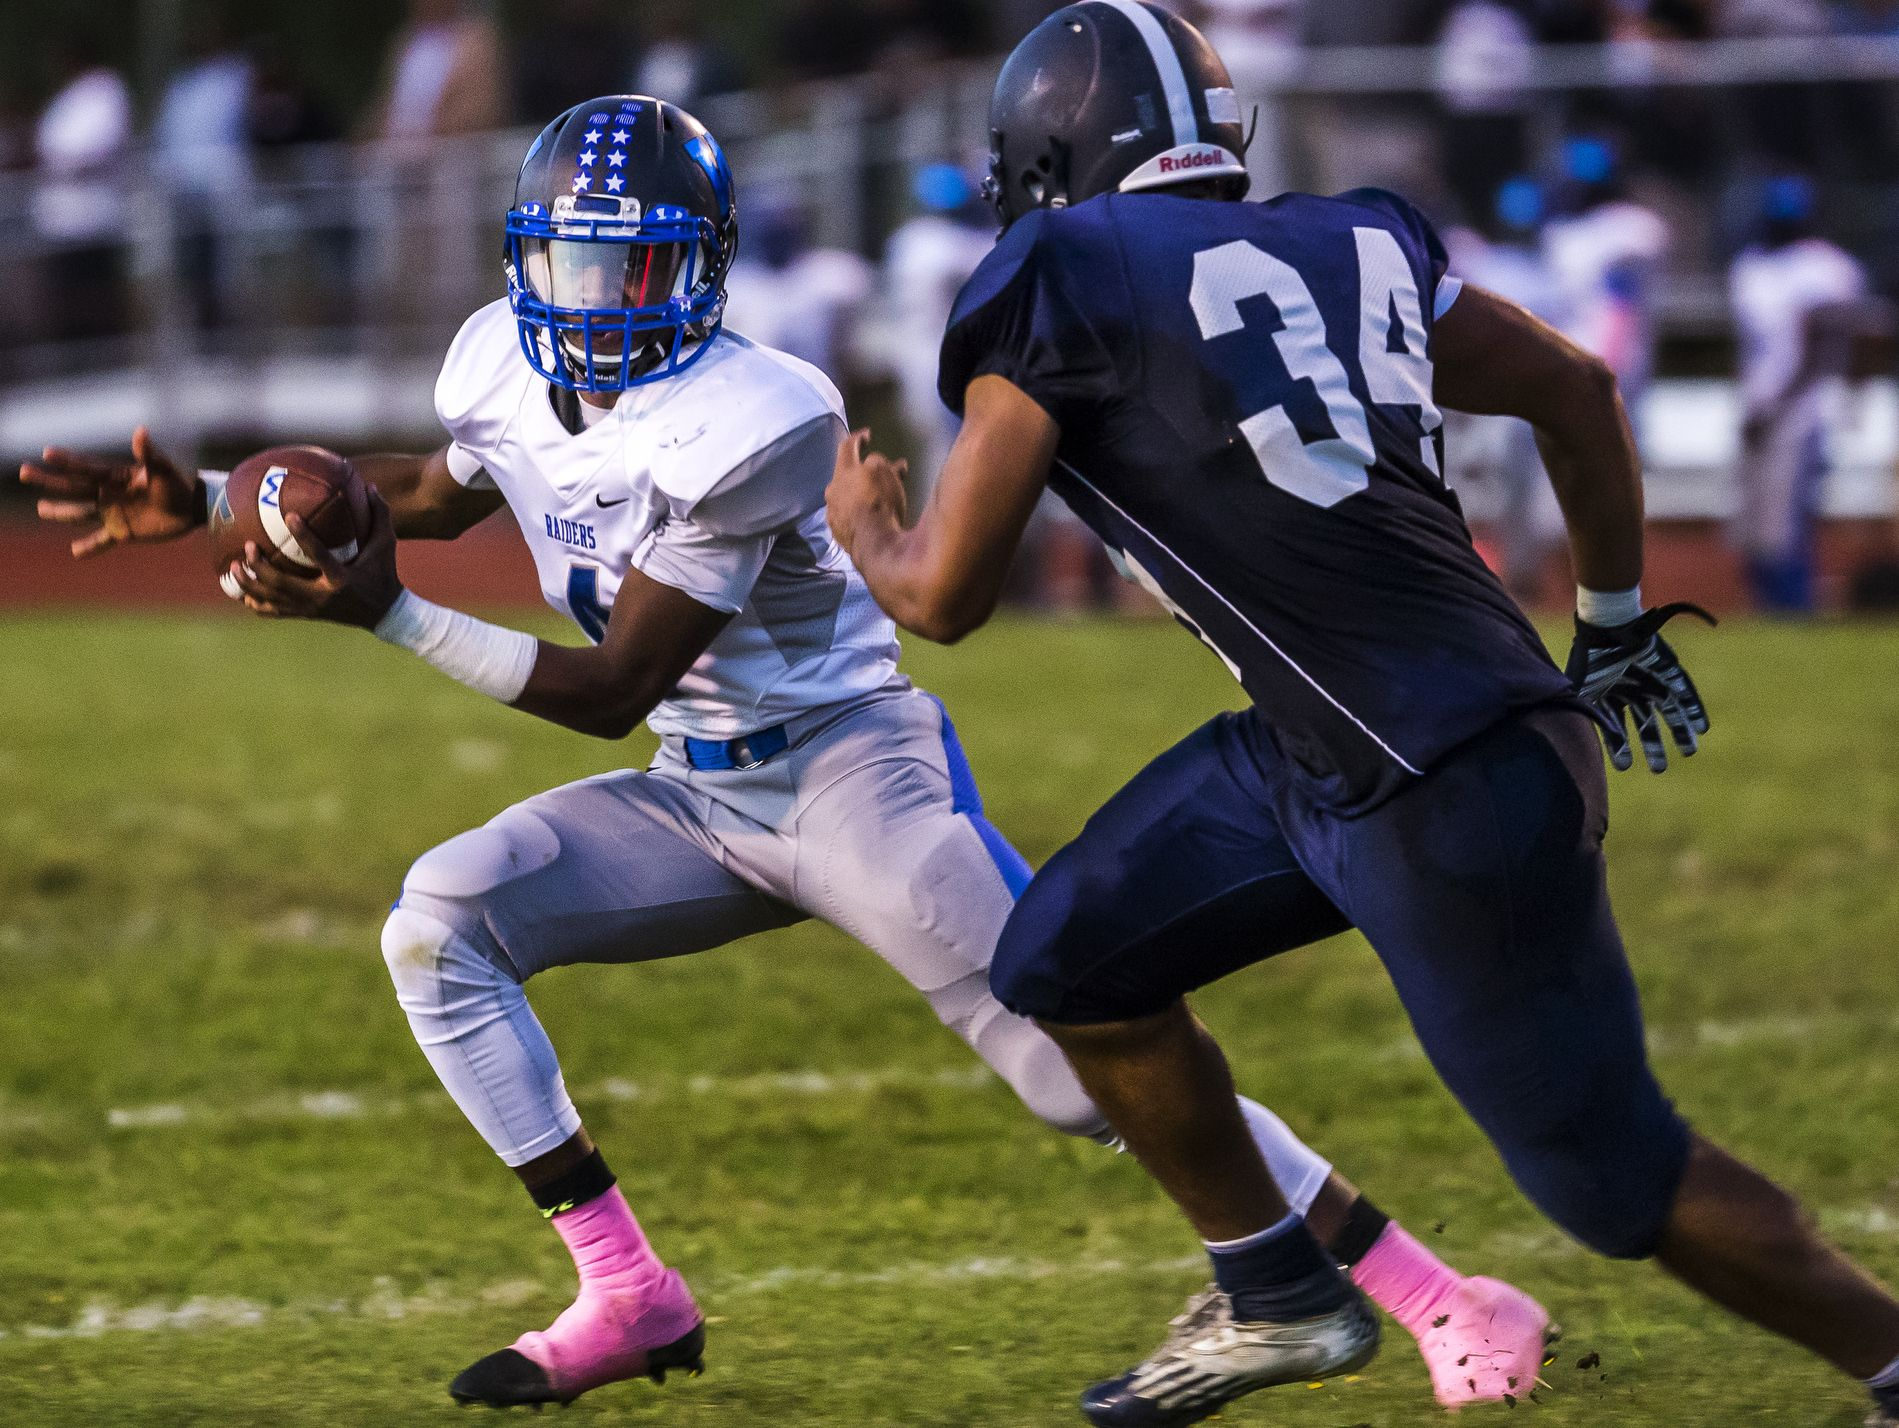 Woodbridge quarterback Troy Haynes tries to evade Lake Forest's Kobe Mumford (No. 34) in the second quarter of Woodbridge's 32-0 win over Lake Forest at Lake Forest High School in Felton on Monday evening.